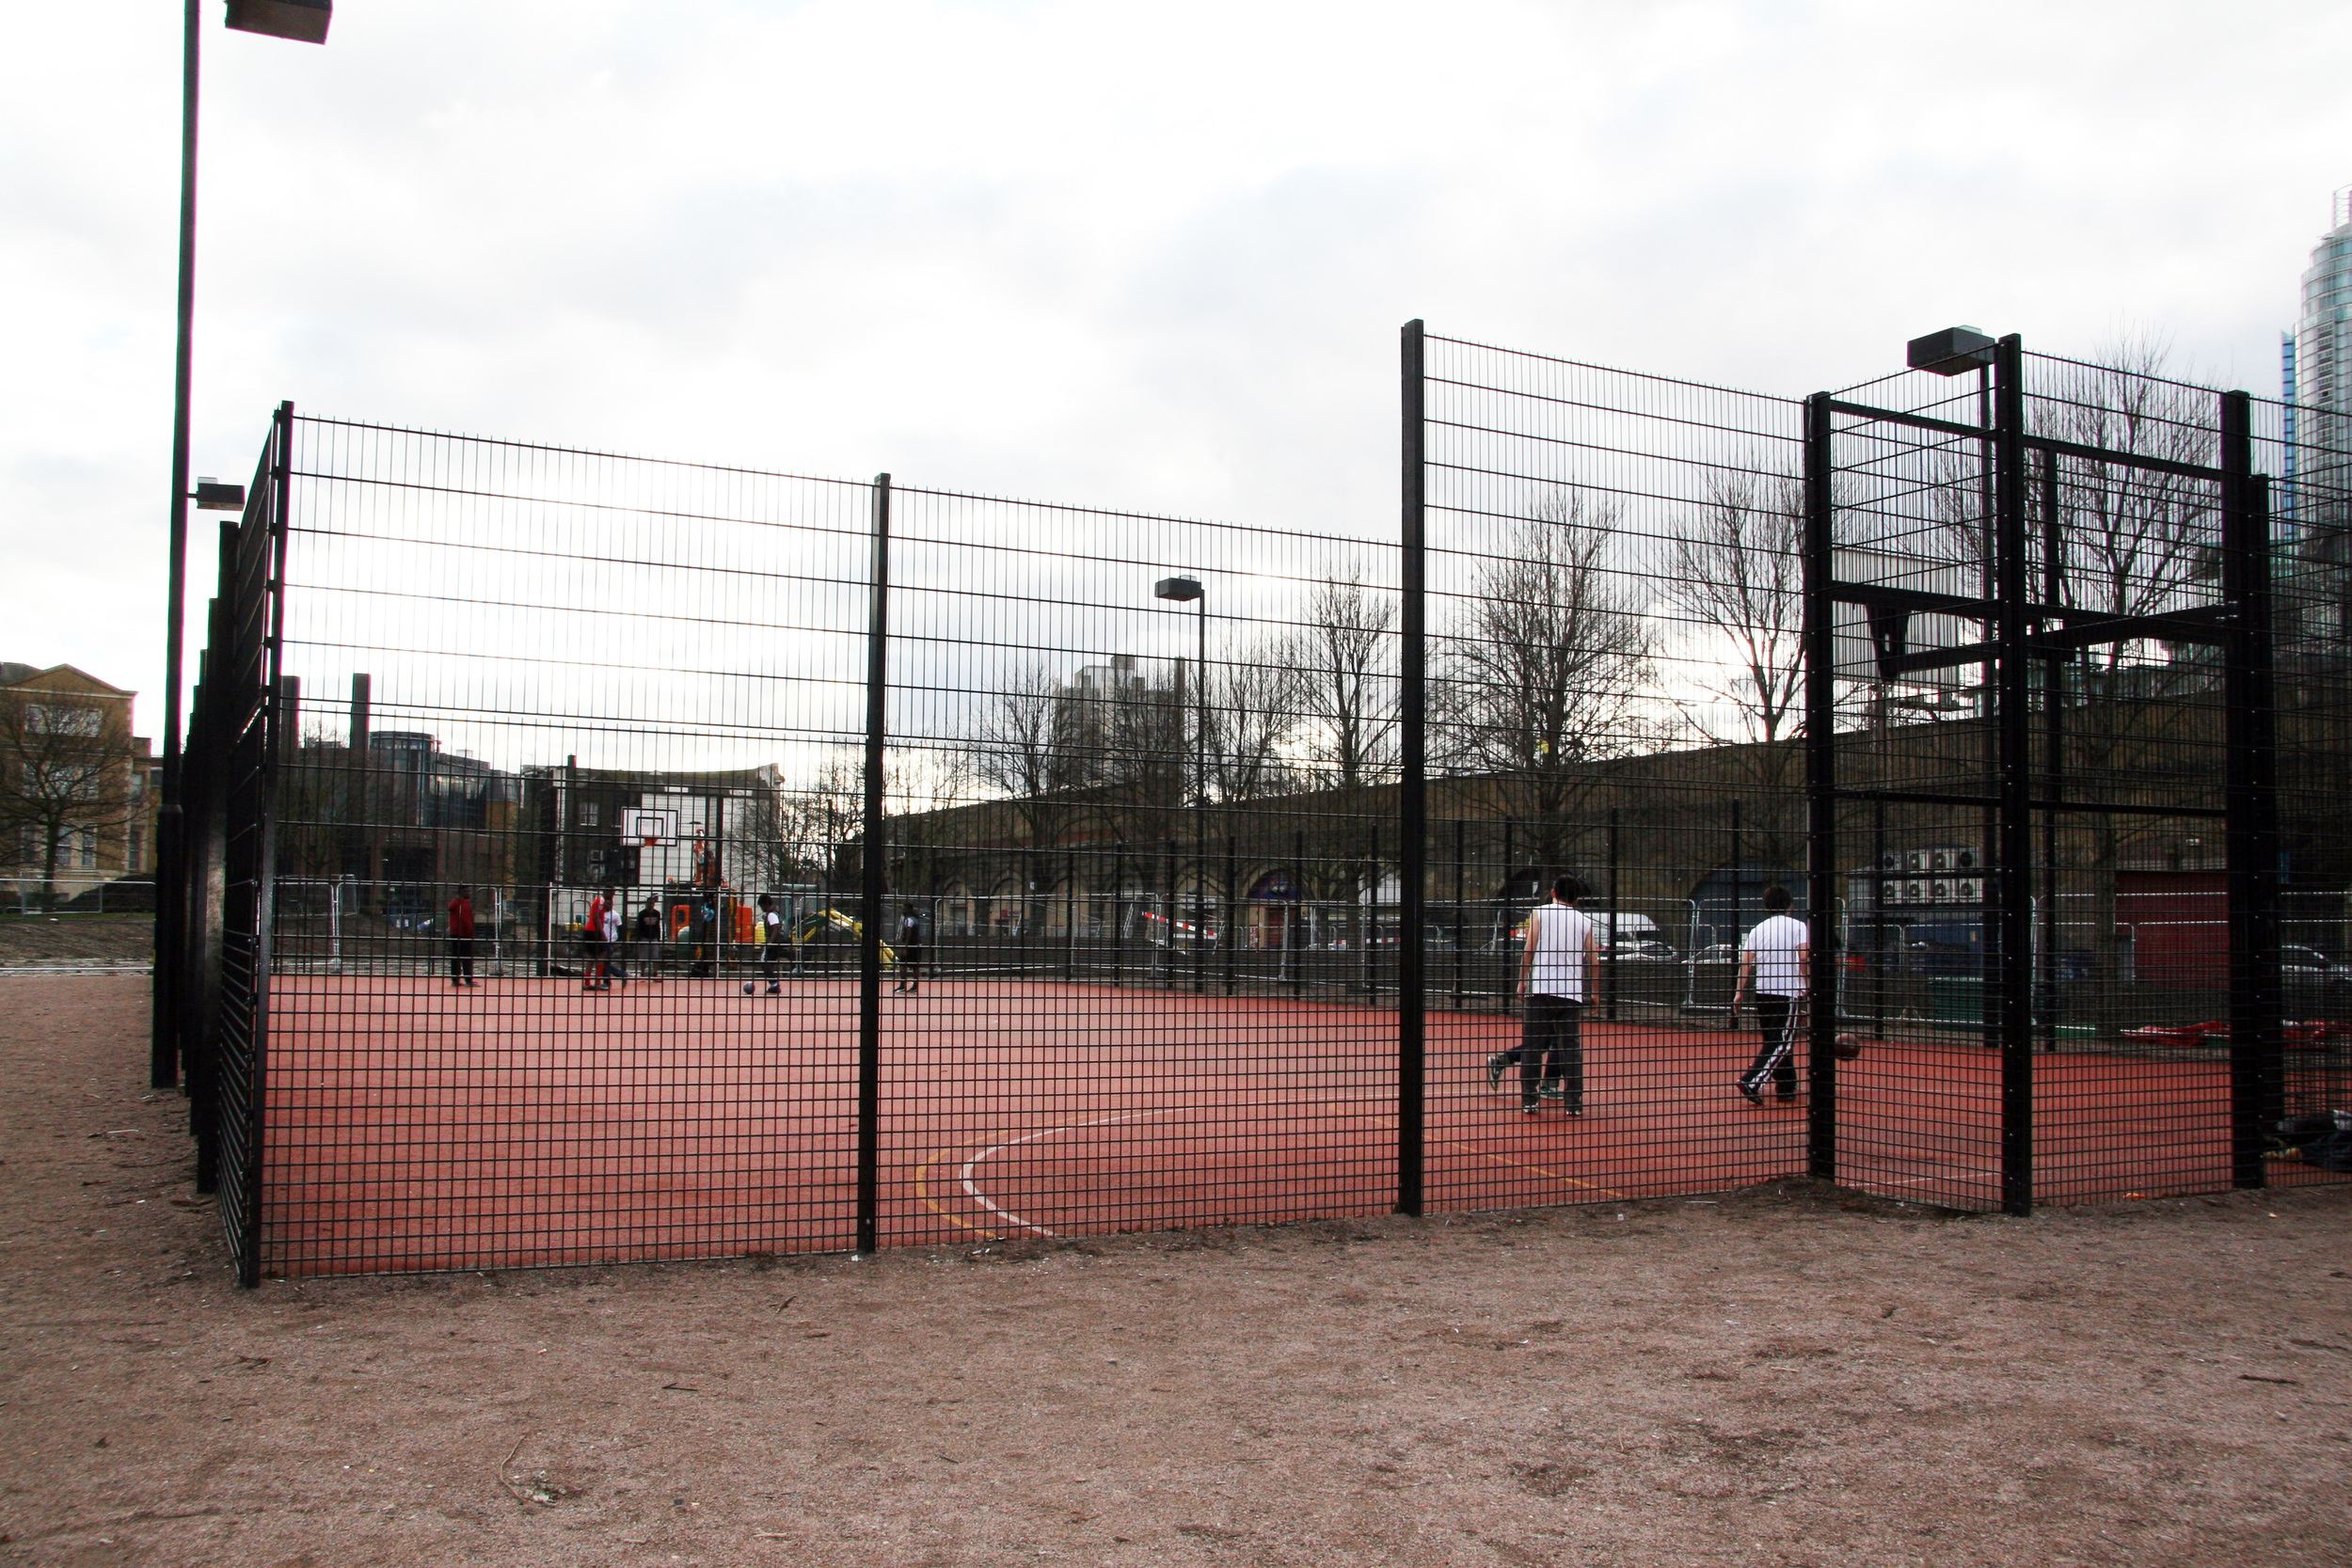 The Multi Use Games Area (MUGA) which opened in 2010